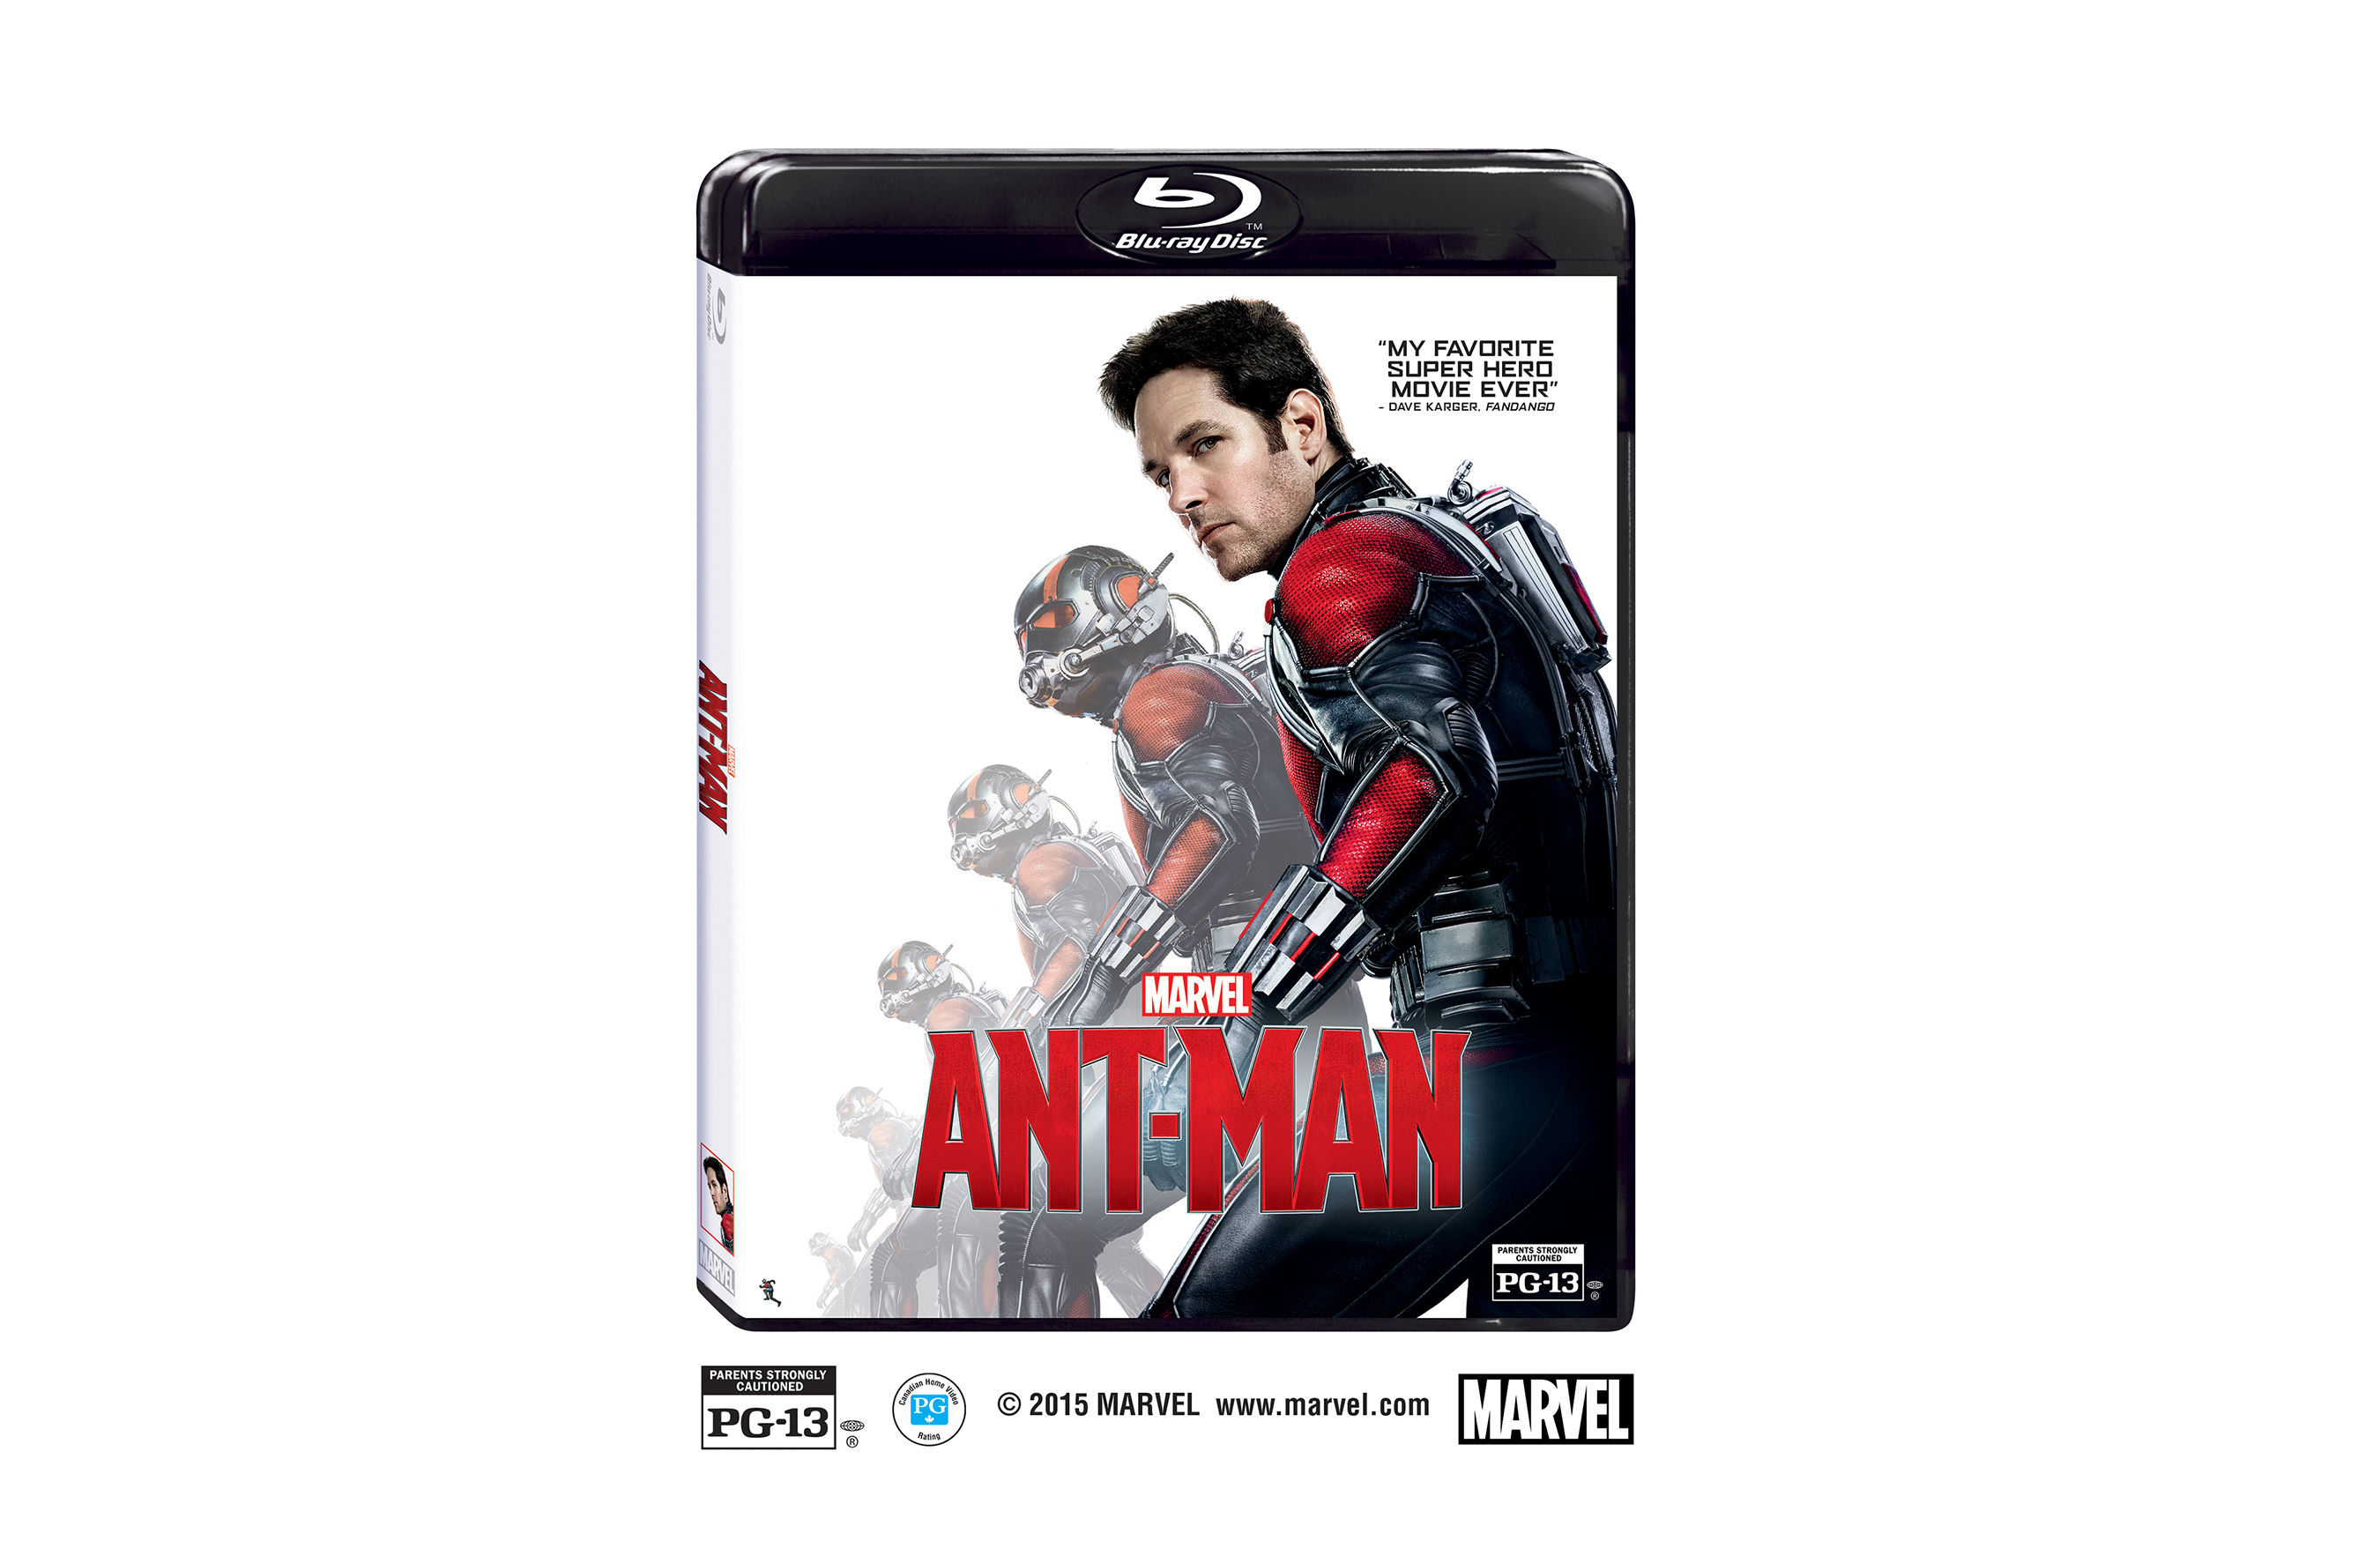 The Perfect Holiday Gift for Movie Fans is Now Available on Digital 3D, Digital HD and Disney Movies Anywhere, and on Blu-ray™ 3D Combo Pack, Blu-ray, DVD, Digital SD and On-Demand December 8, 2015! © 2015 Marvel